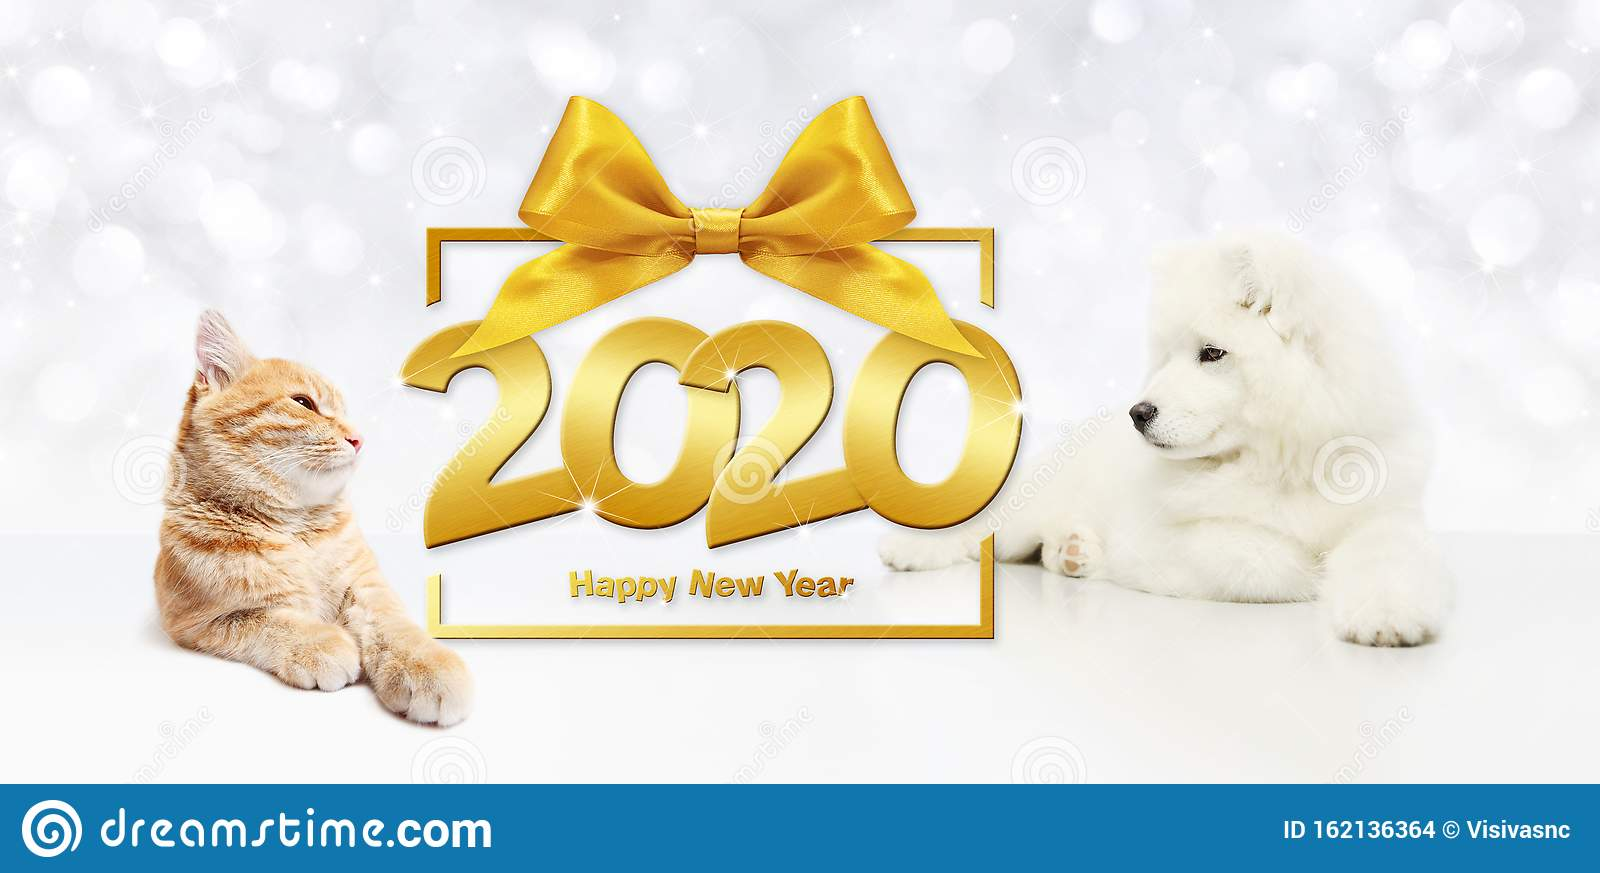 Gift Card, Dog And Cat 2020 Happy New Year Text On Package